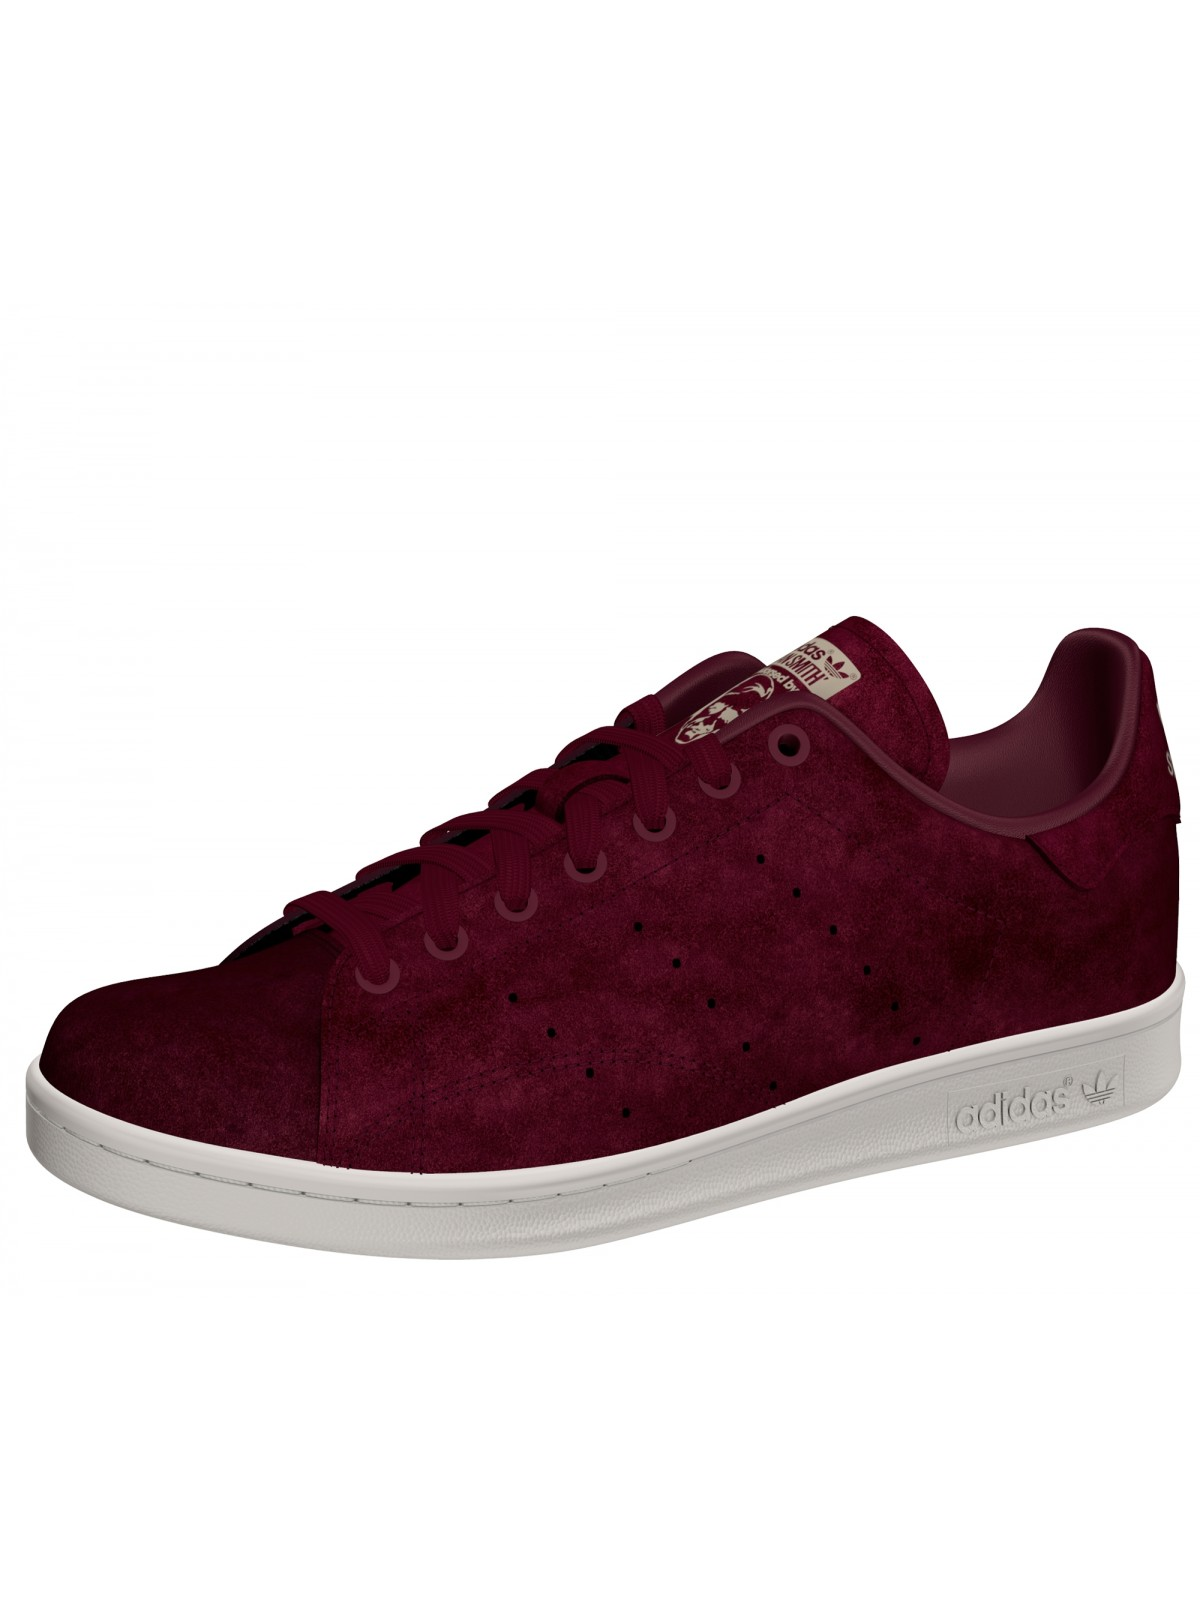 ADIDAS Stan Smith suède galon bordeaux